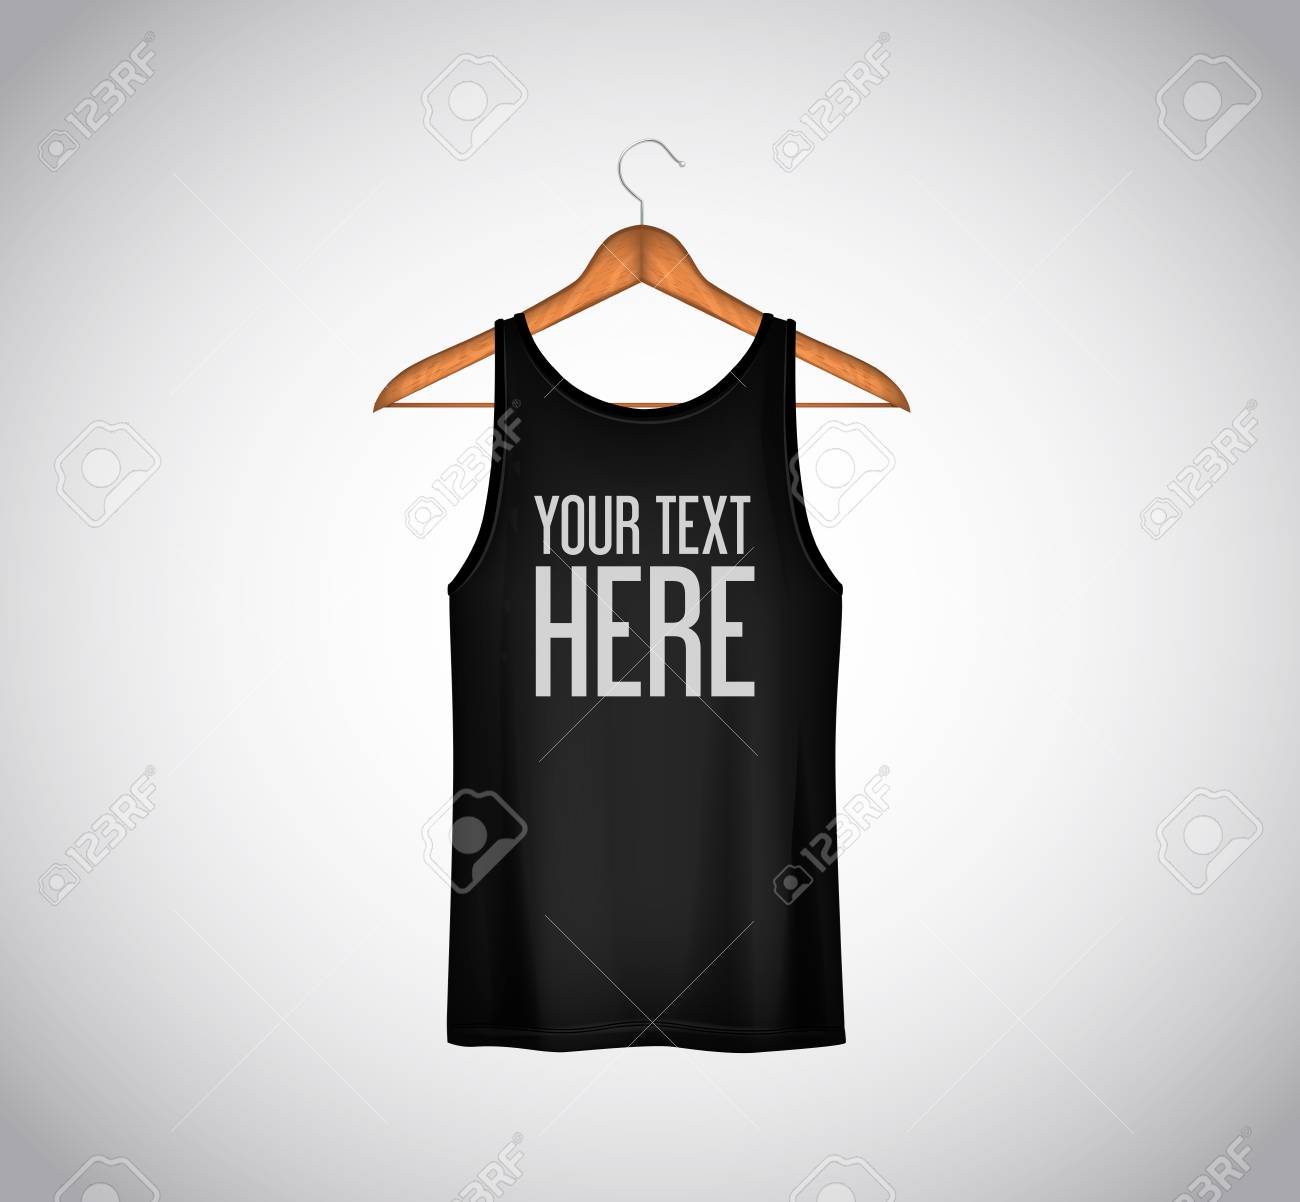 Men black tank top isolated. Realistic mockup whit brand text for advertising. T-shirt template on background. - 125264522